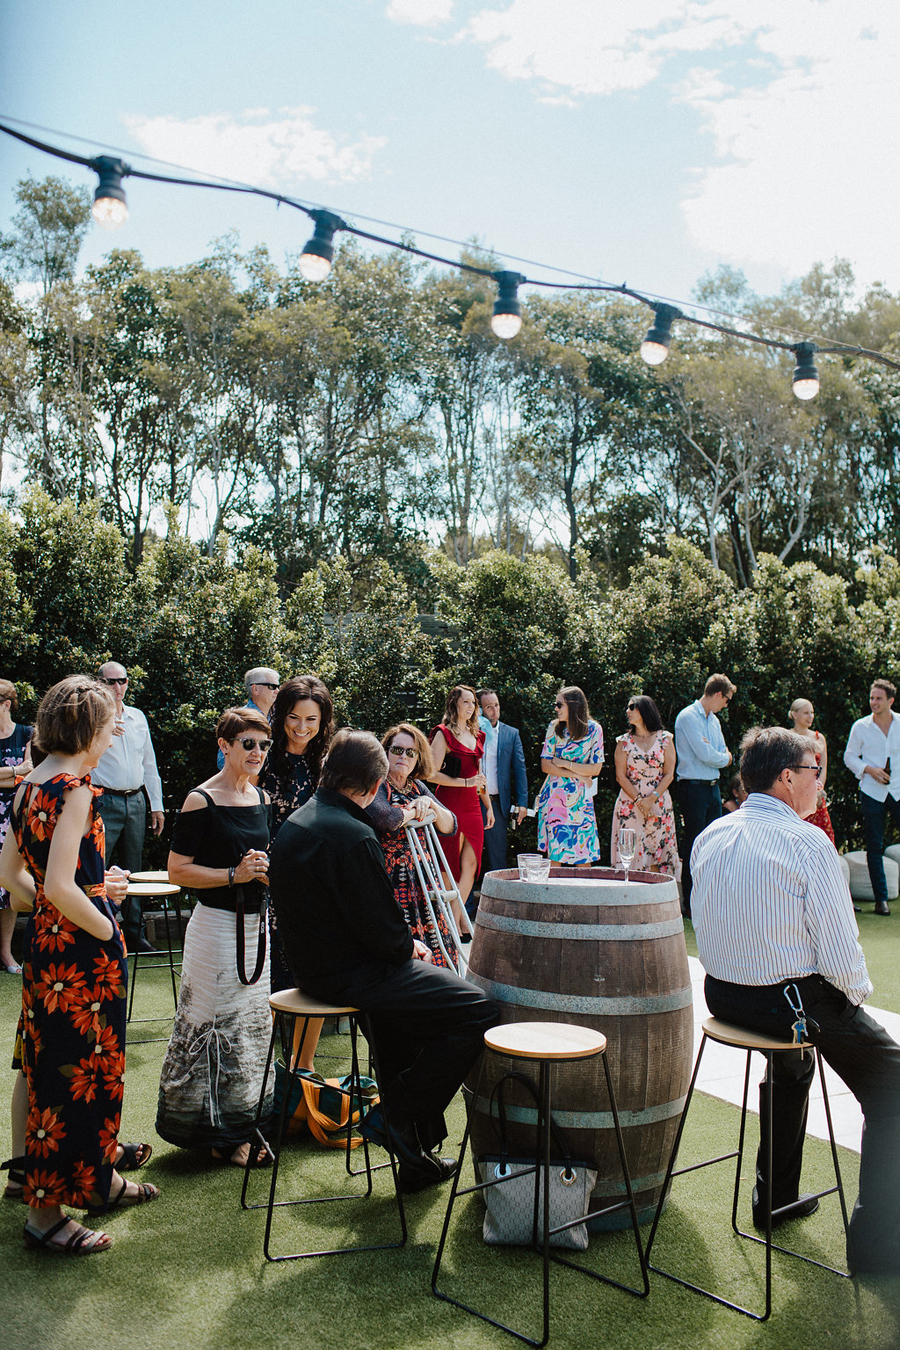 osteria-casuarina-wedding-venue-tweed-coast-weddings-coastal-garden-reception-real-wedding020.jpg